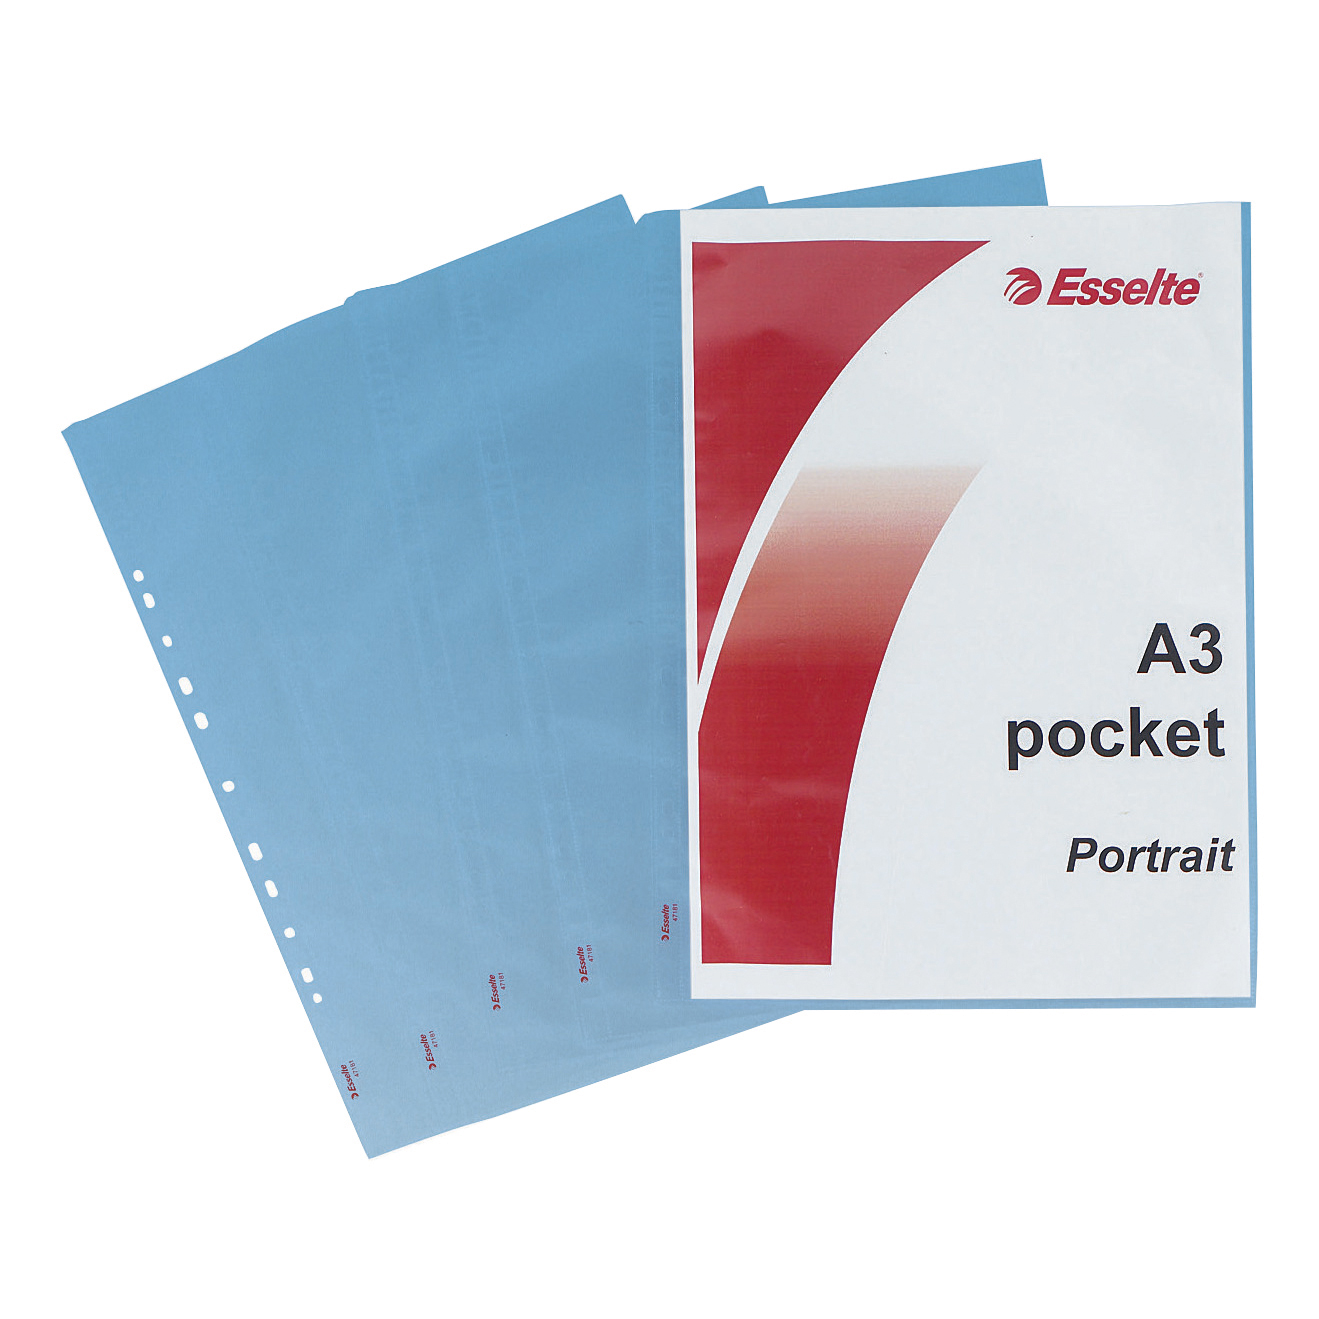 Esselte Punched Pocket Polypropylene Top-opening 85 Micron A3 Portrait Clear Ref 47181 [Pack 10]